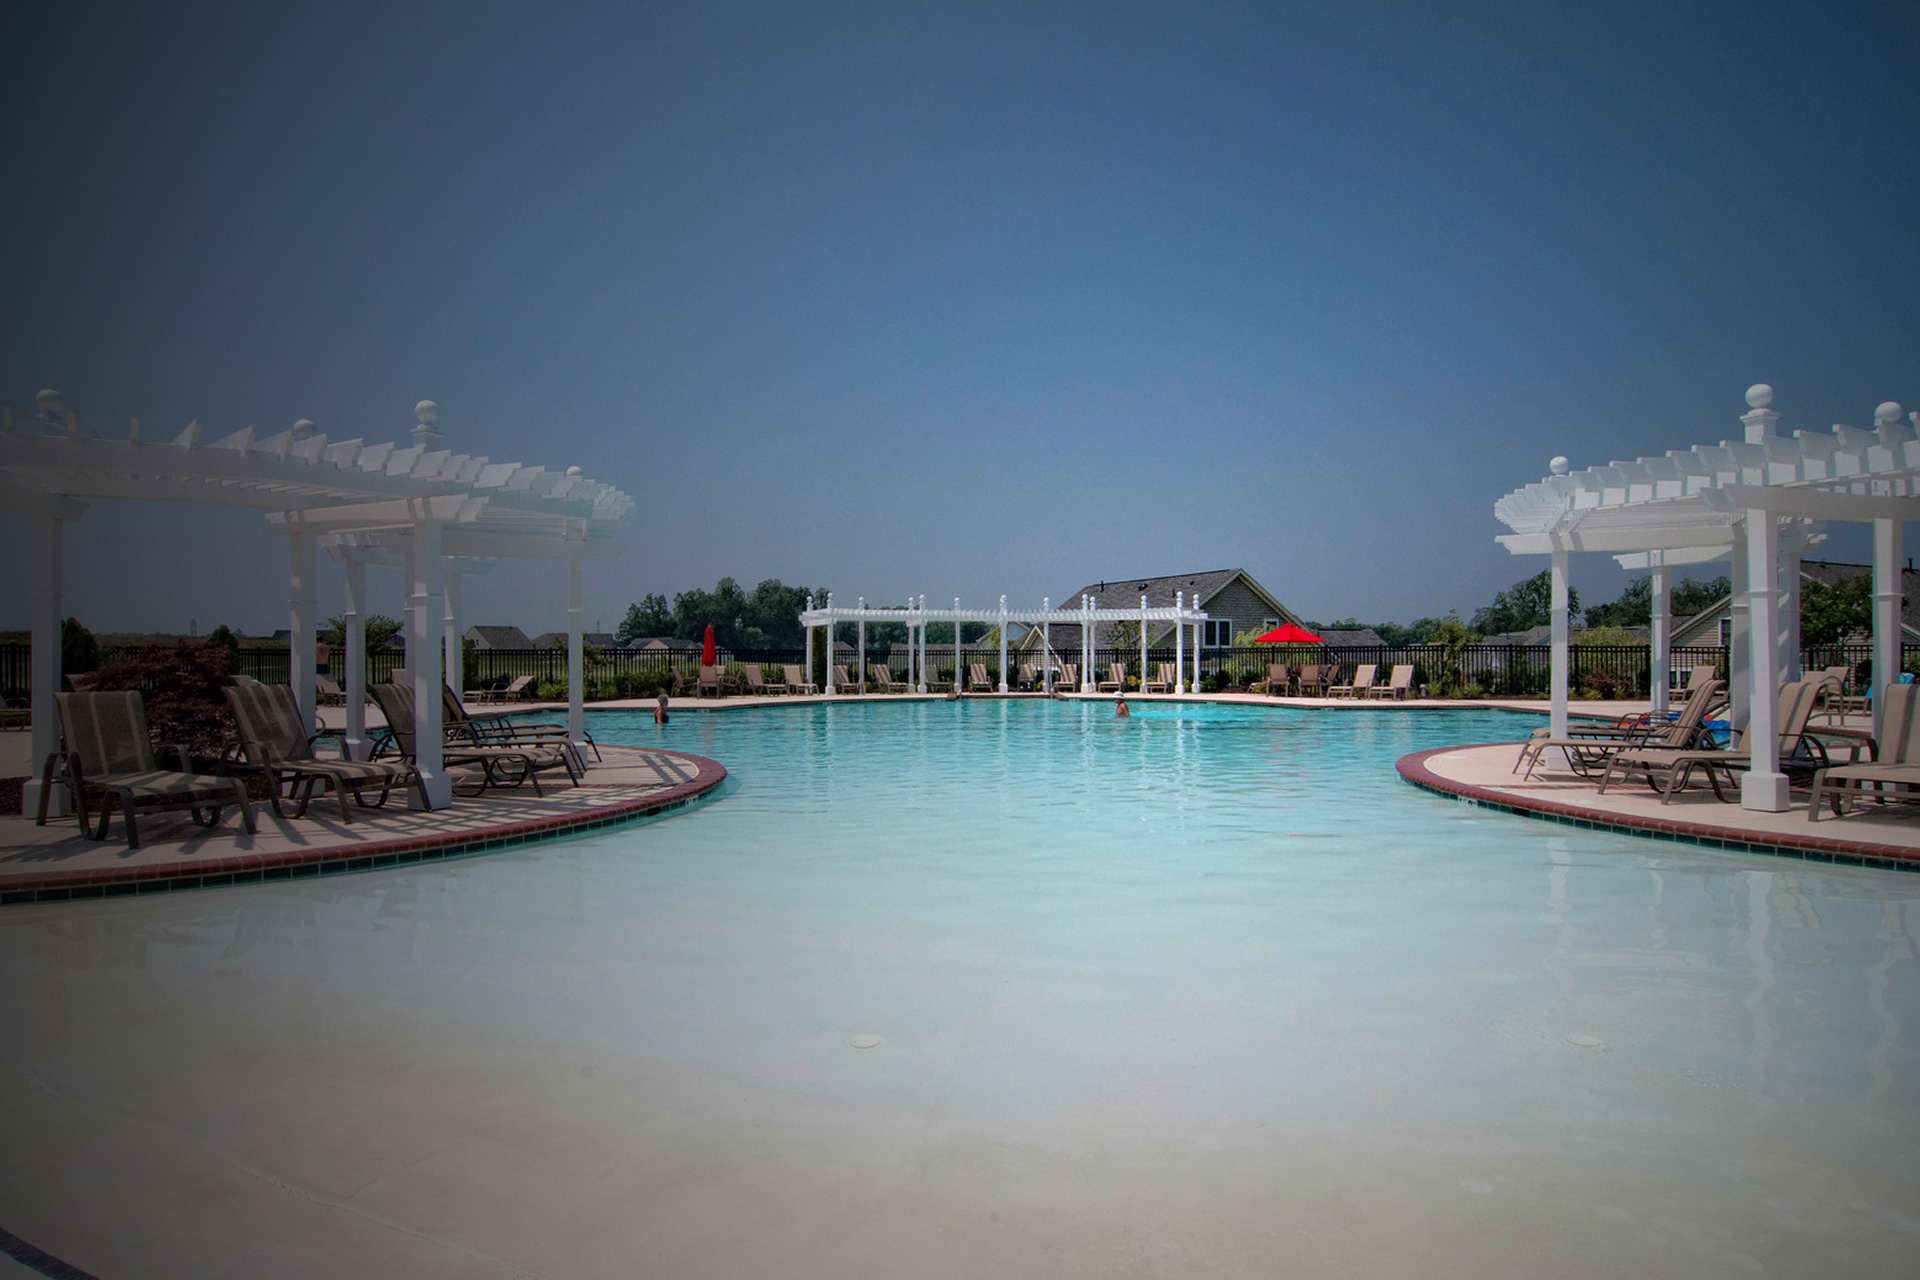 Best Neighborhoods with Pools near Williamsburg VA